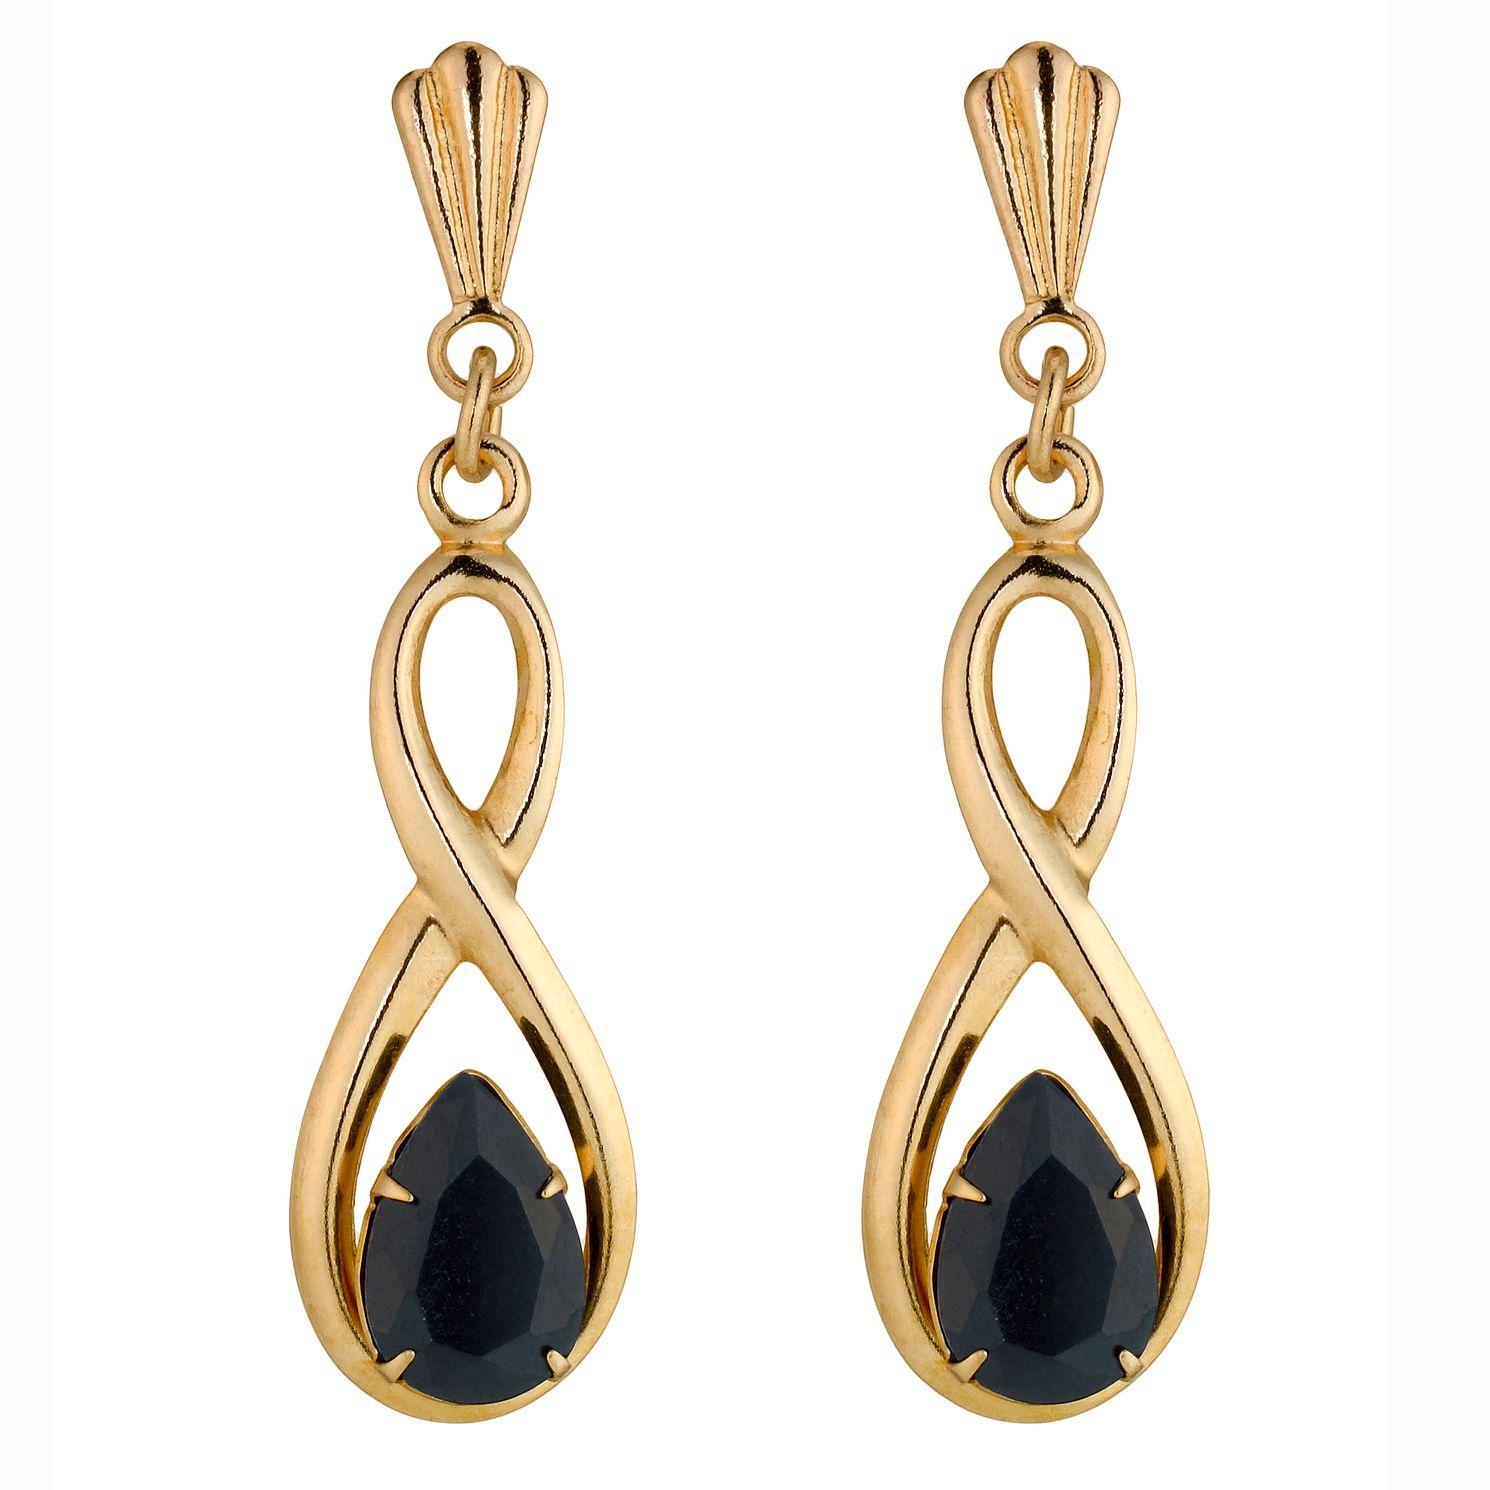 9ct Gold Sapphire Drop Earrings - Product number 4579194